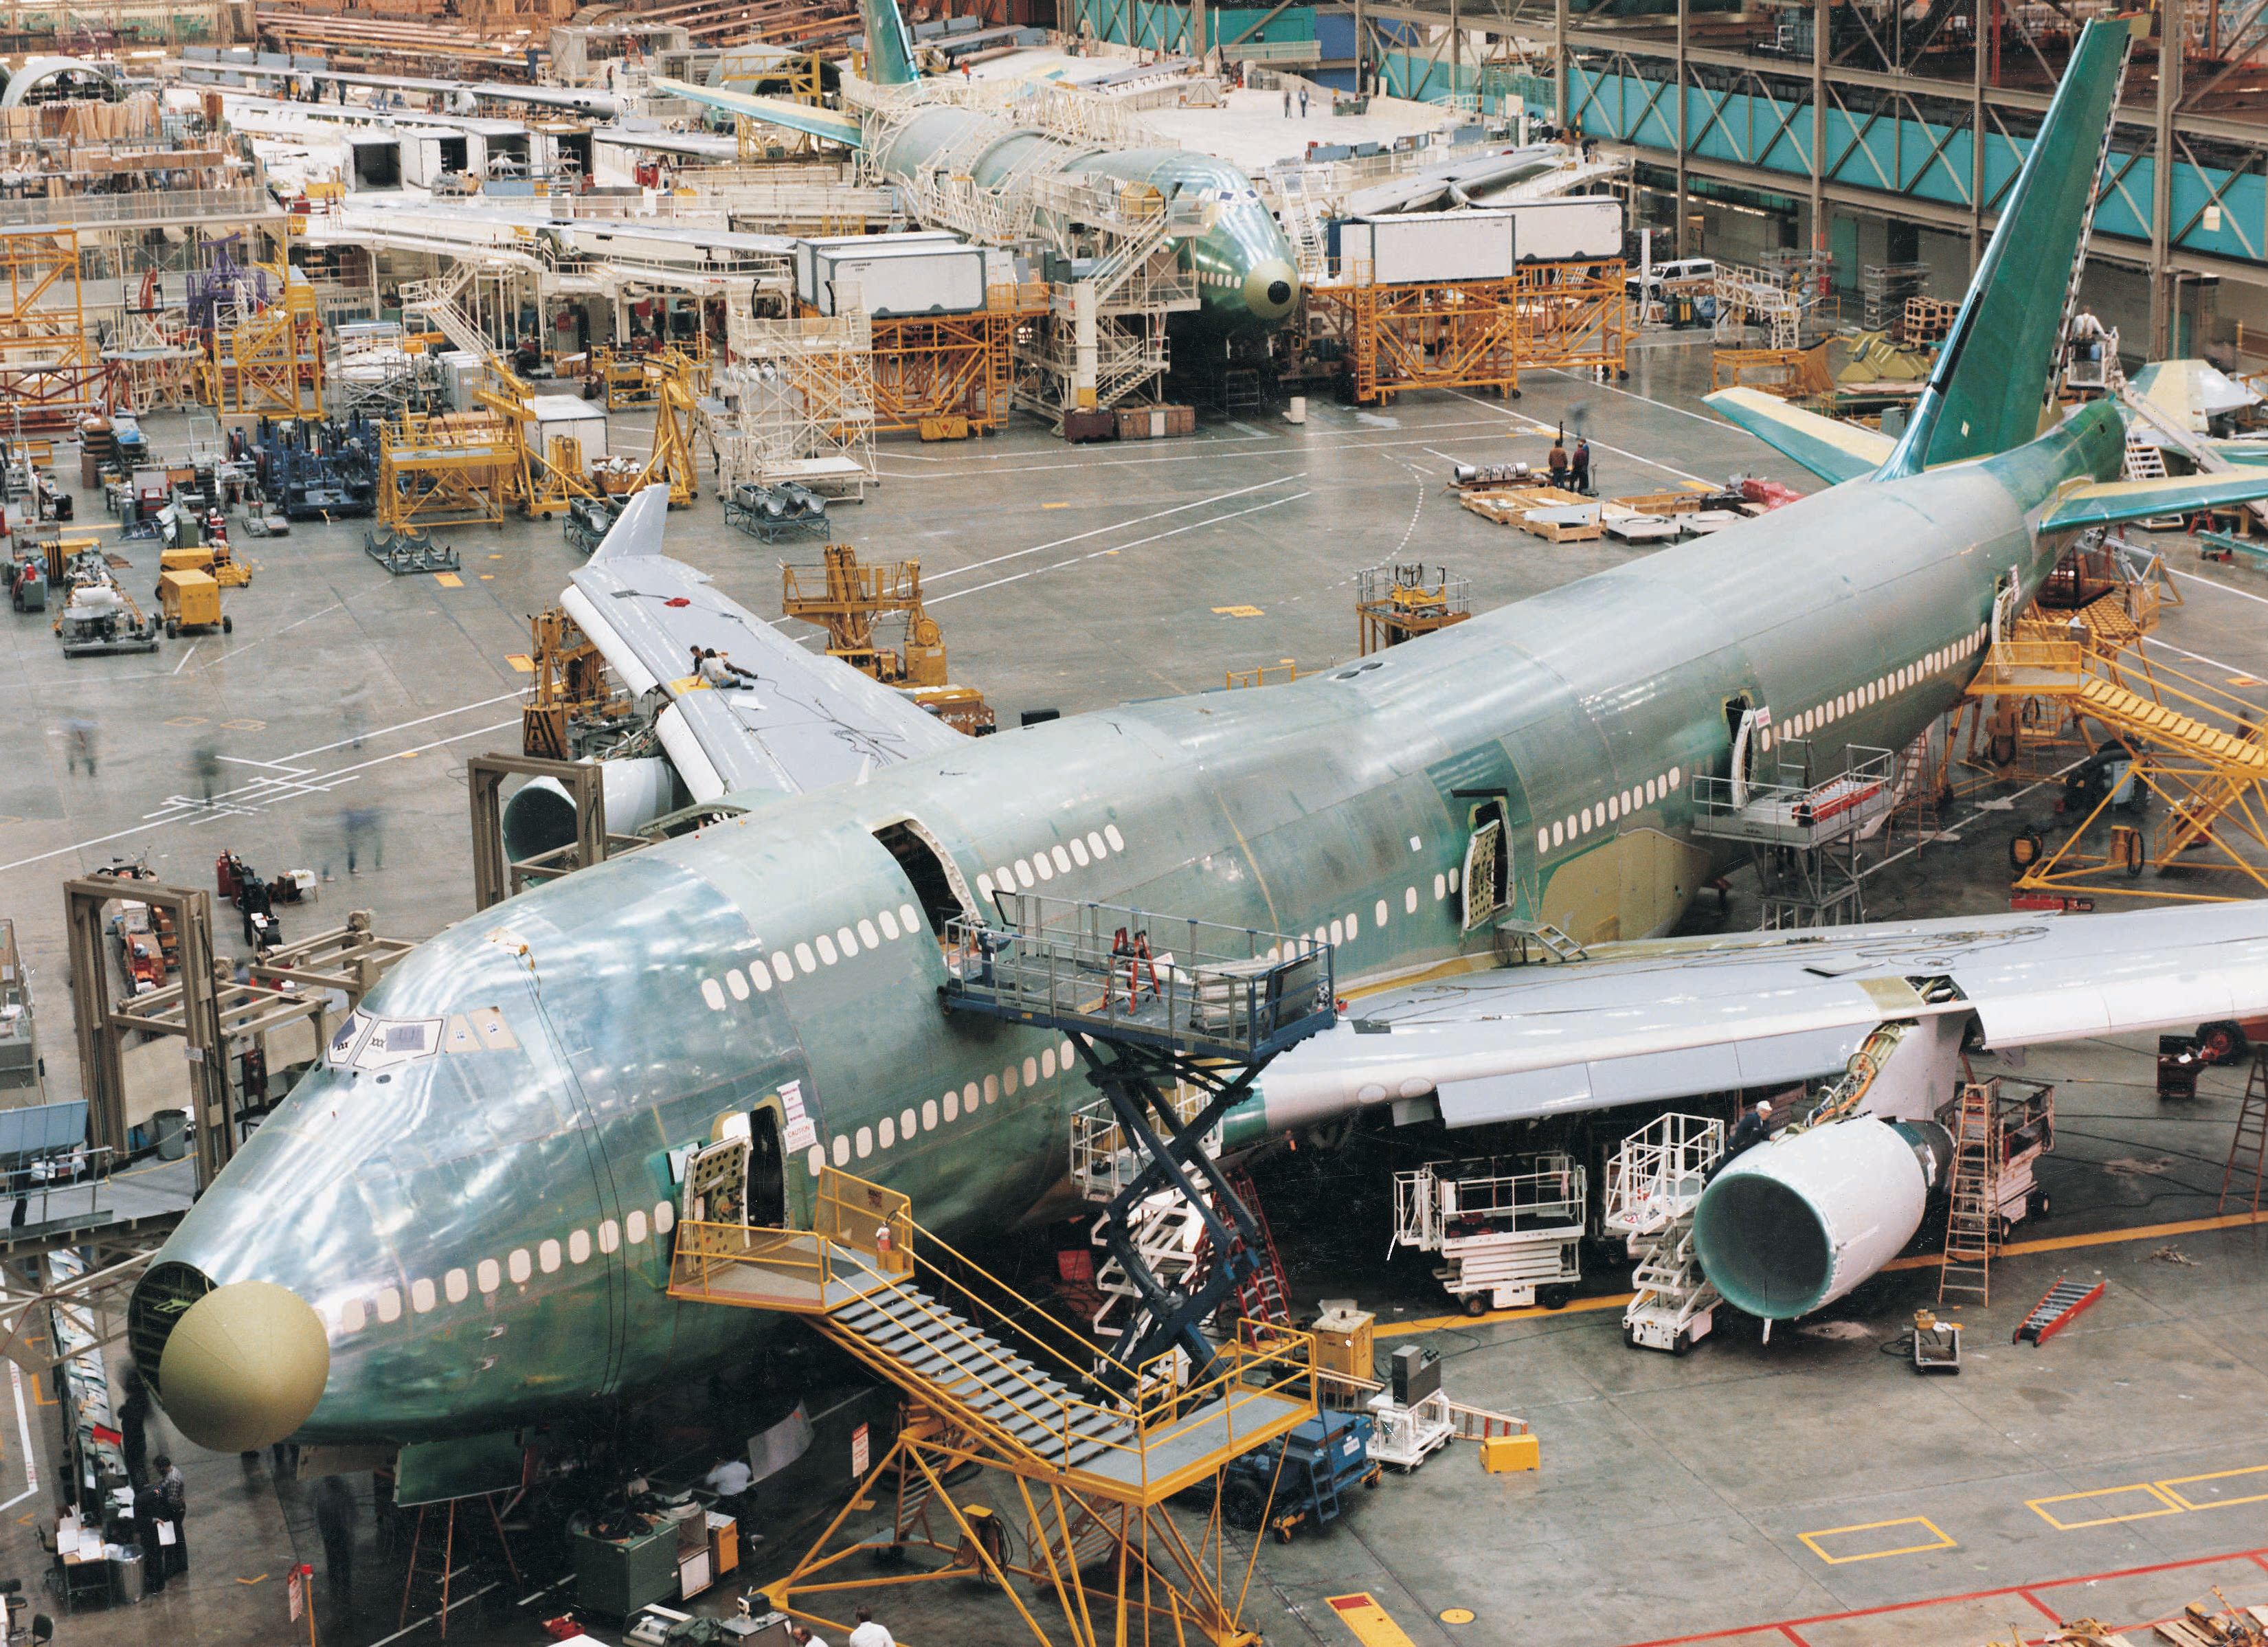 Why Shares of Boeing and Its Suppliers Are Rallying Today | The Motley Fool